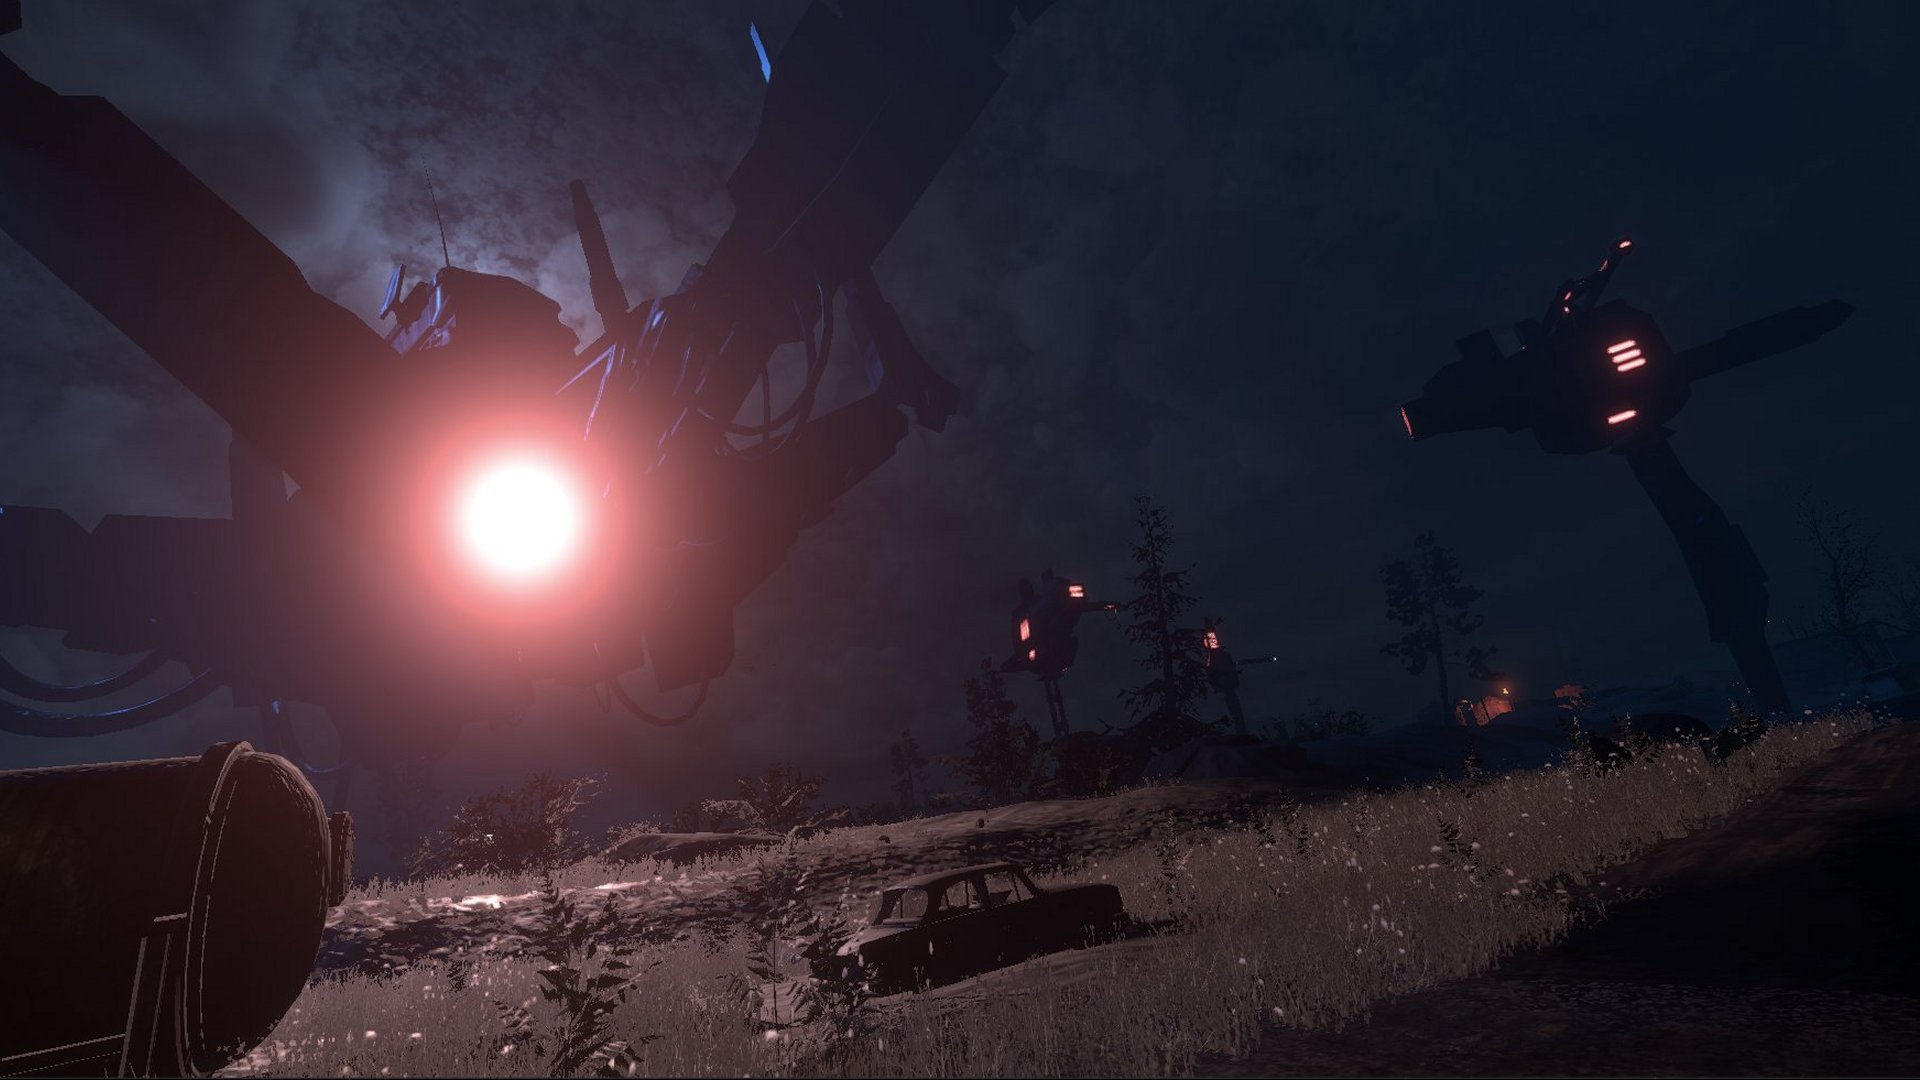 Big Robot Returns With Eerie Survival Game, The Light Keeps Us Safe